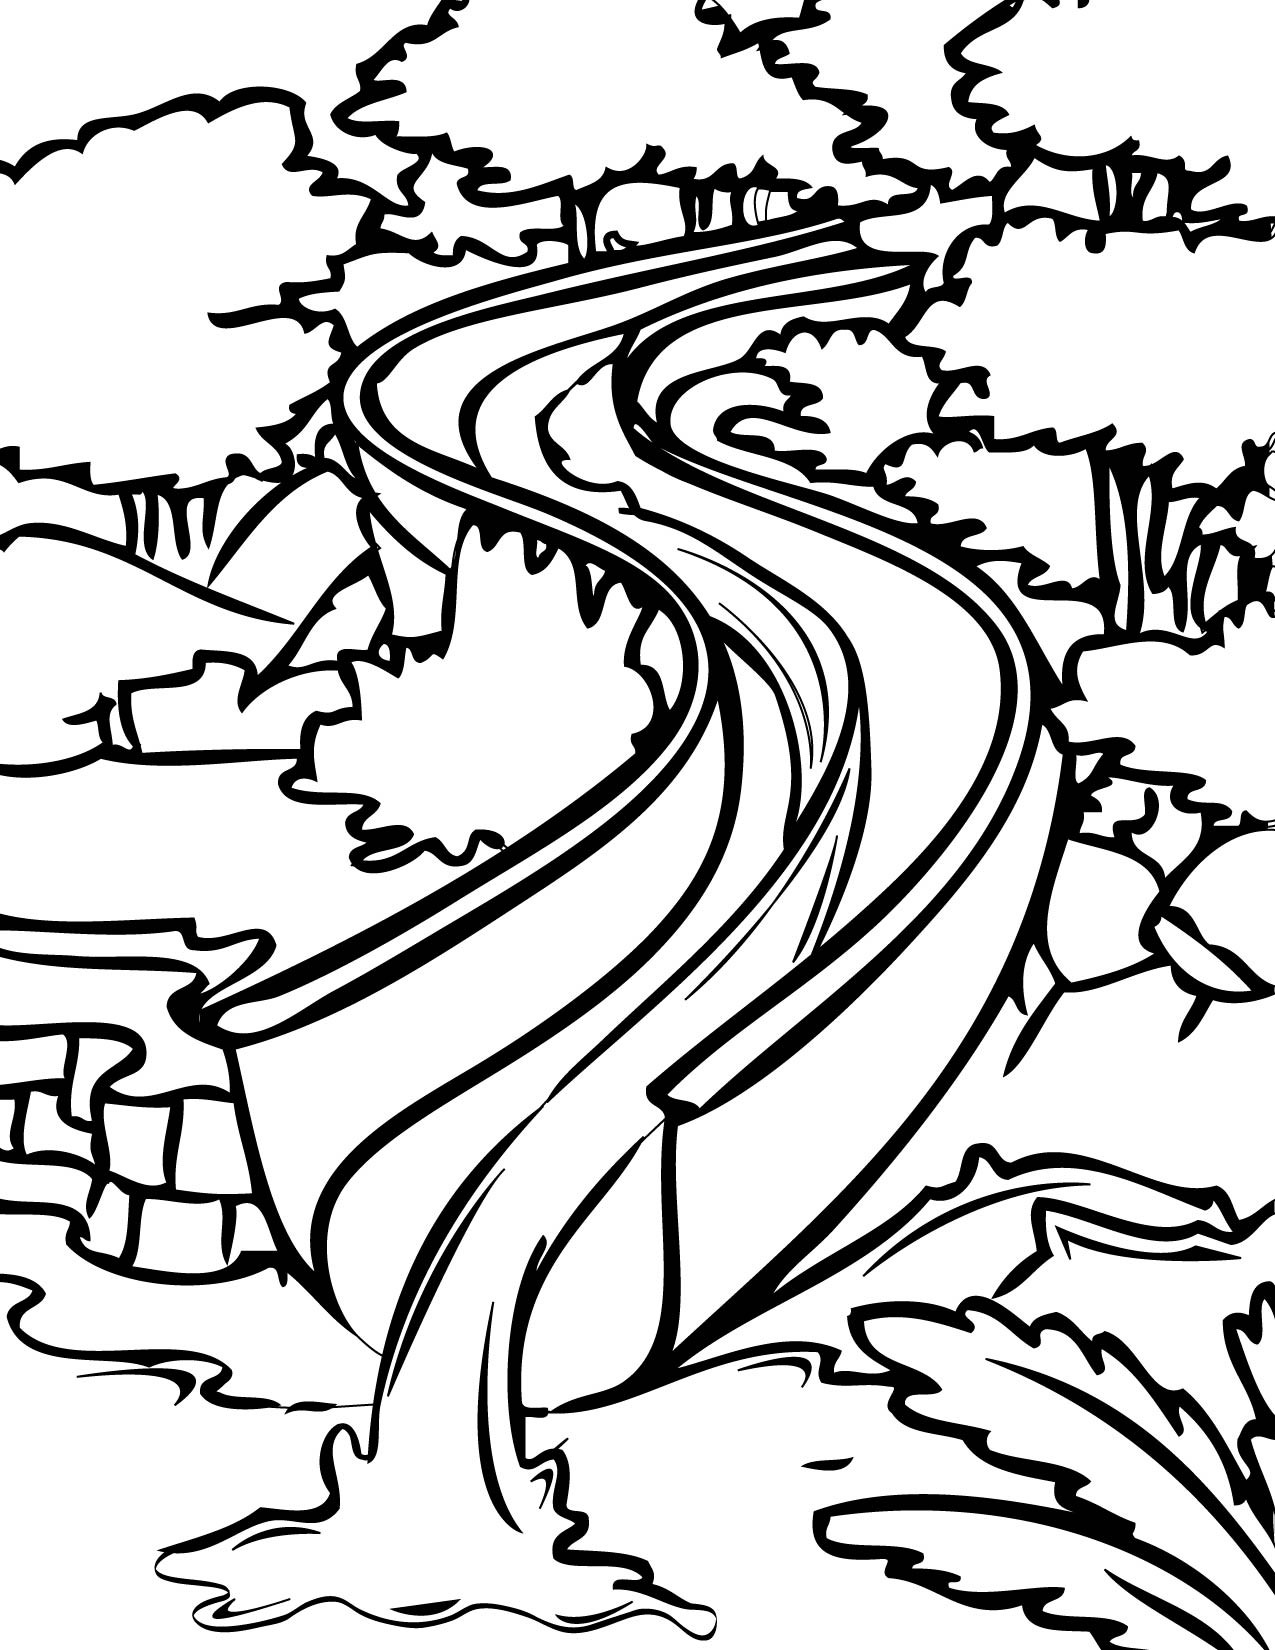 waterslide coloring pages - Roberto.mattni.co